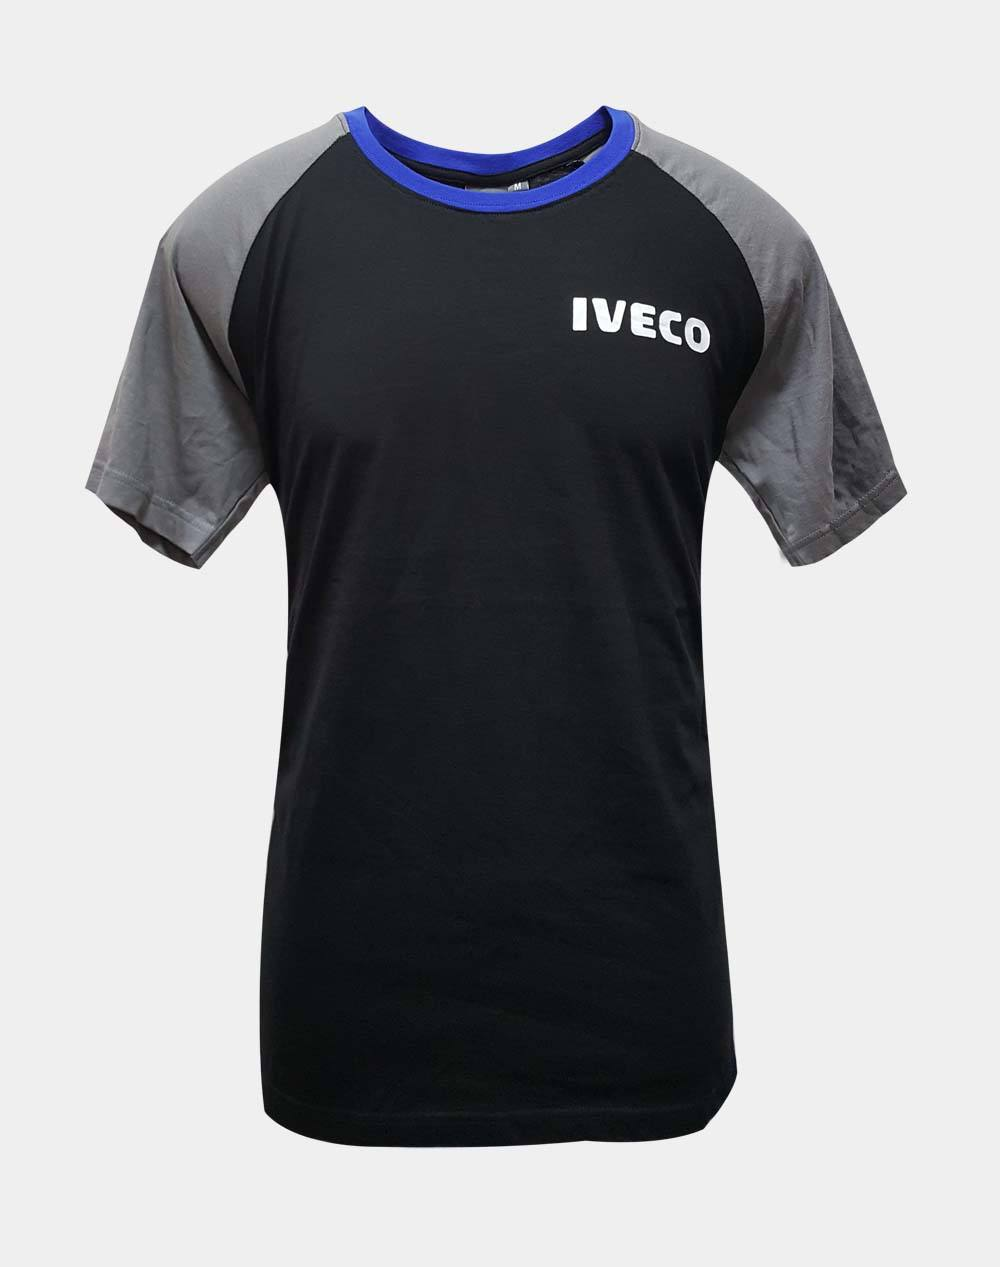 Raglan Sleeve T-shirt Manufacturer, Wholesale Raglan Sleeve T-shirt Supplier, Bangladesh, Manufacturer, Supplier, Exporter